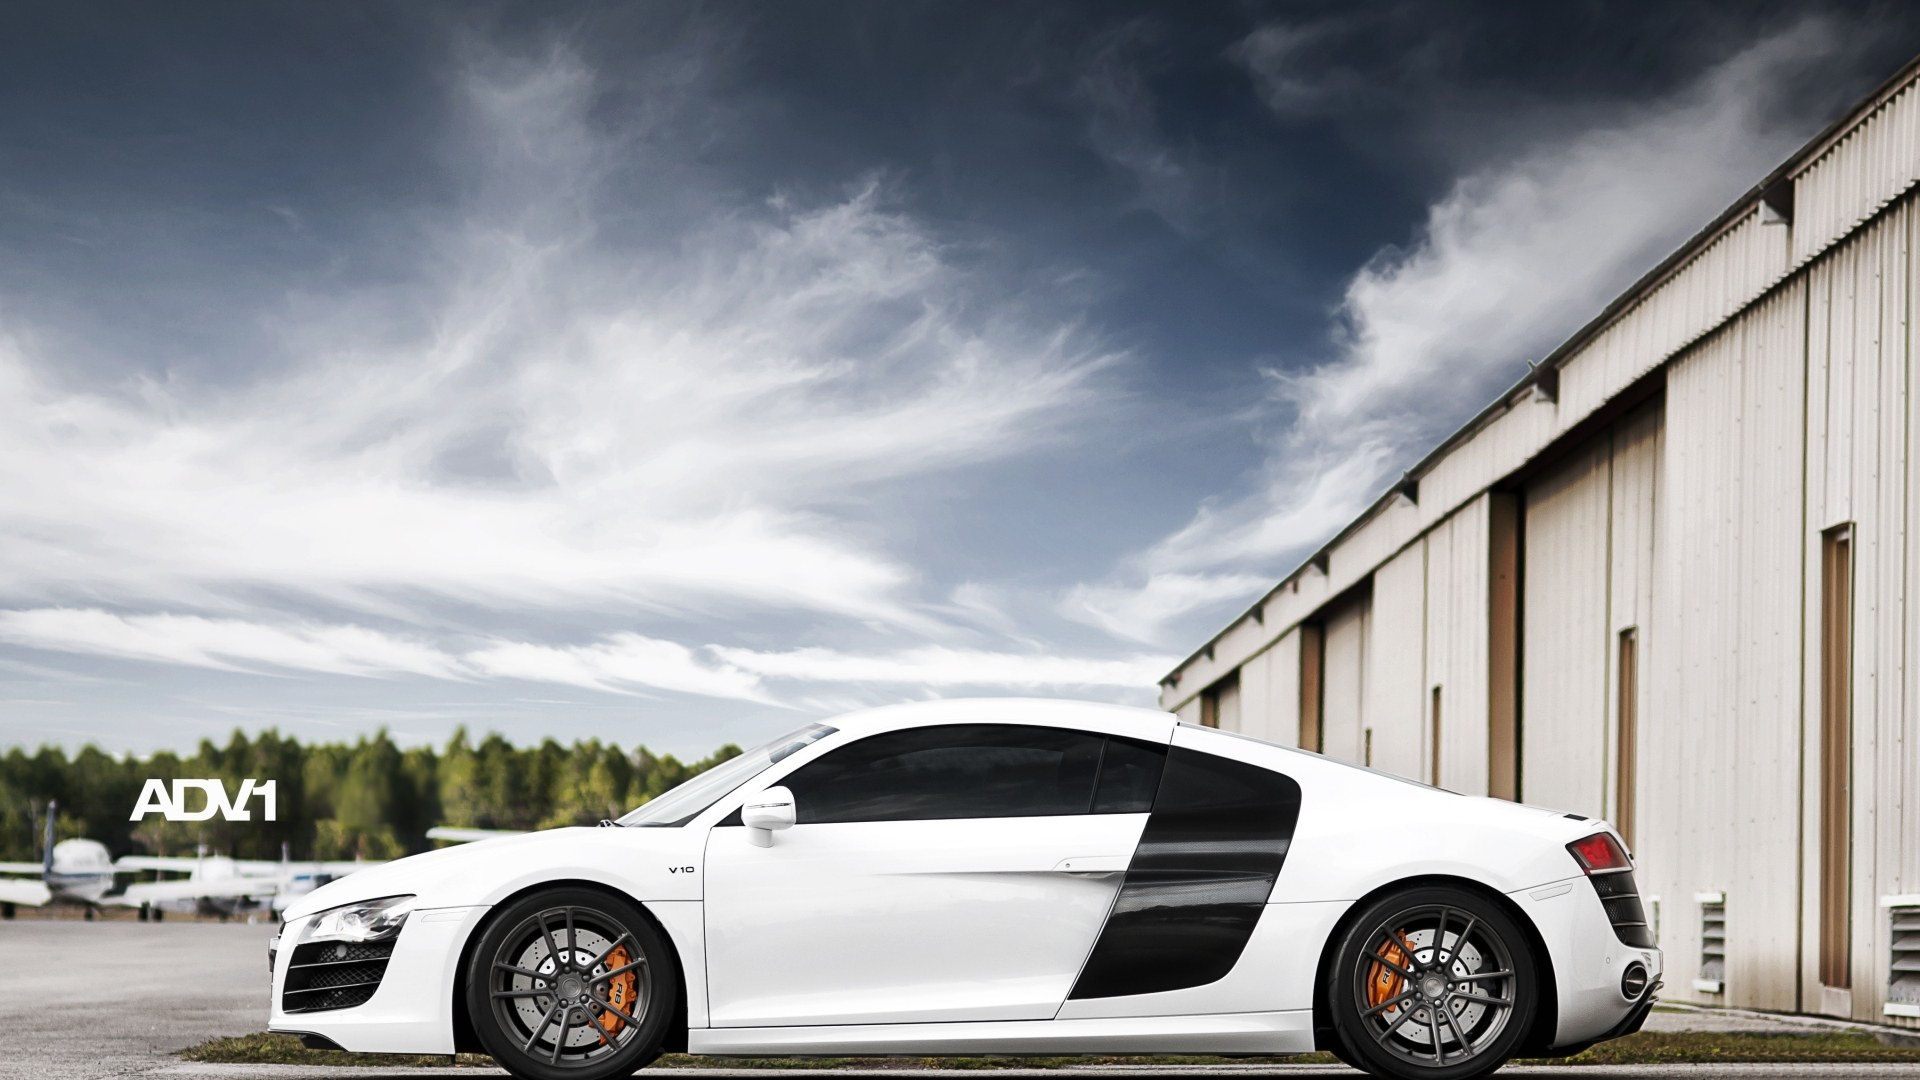 best-car-wallpapers-15-photos- (13)